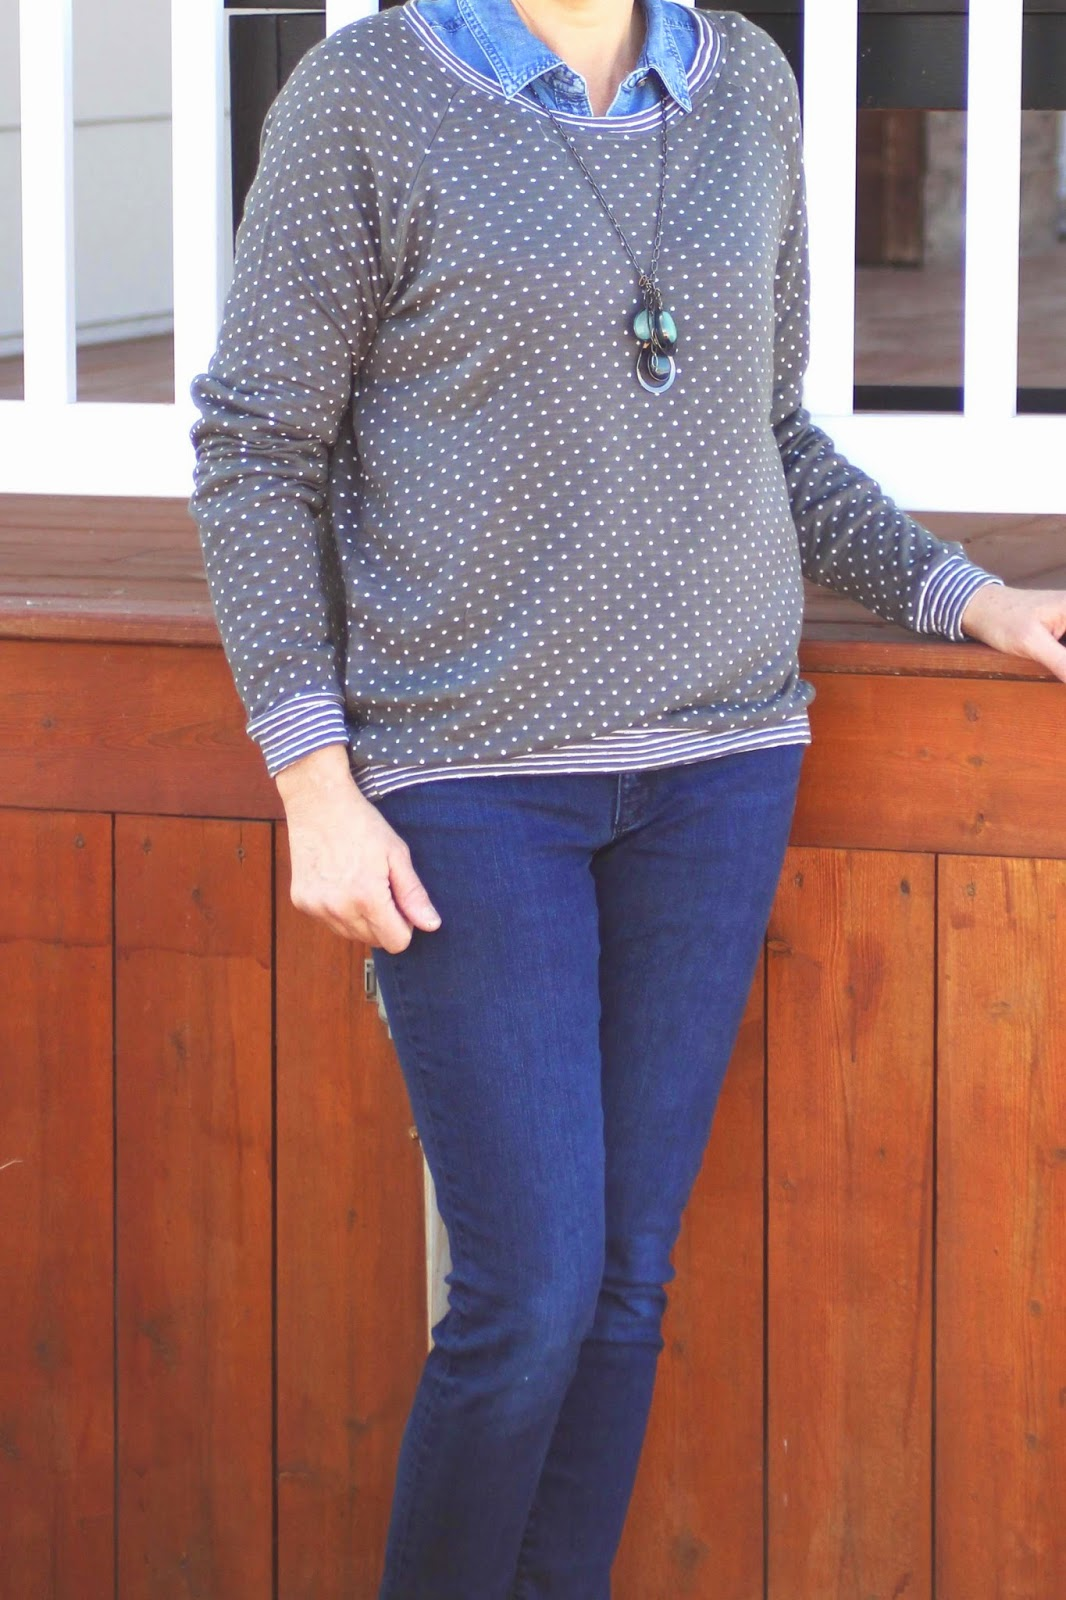 LInden sweatshirt  with gray polka dot fabri